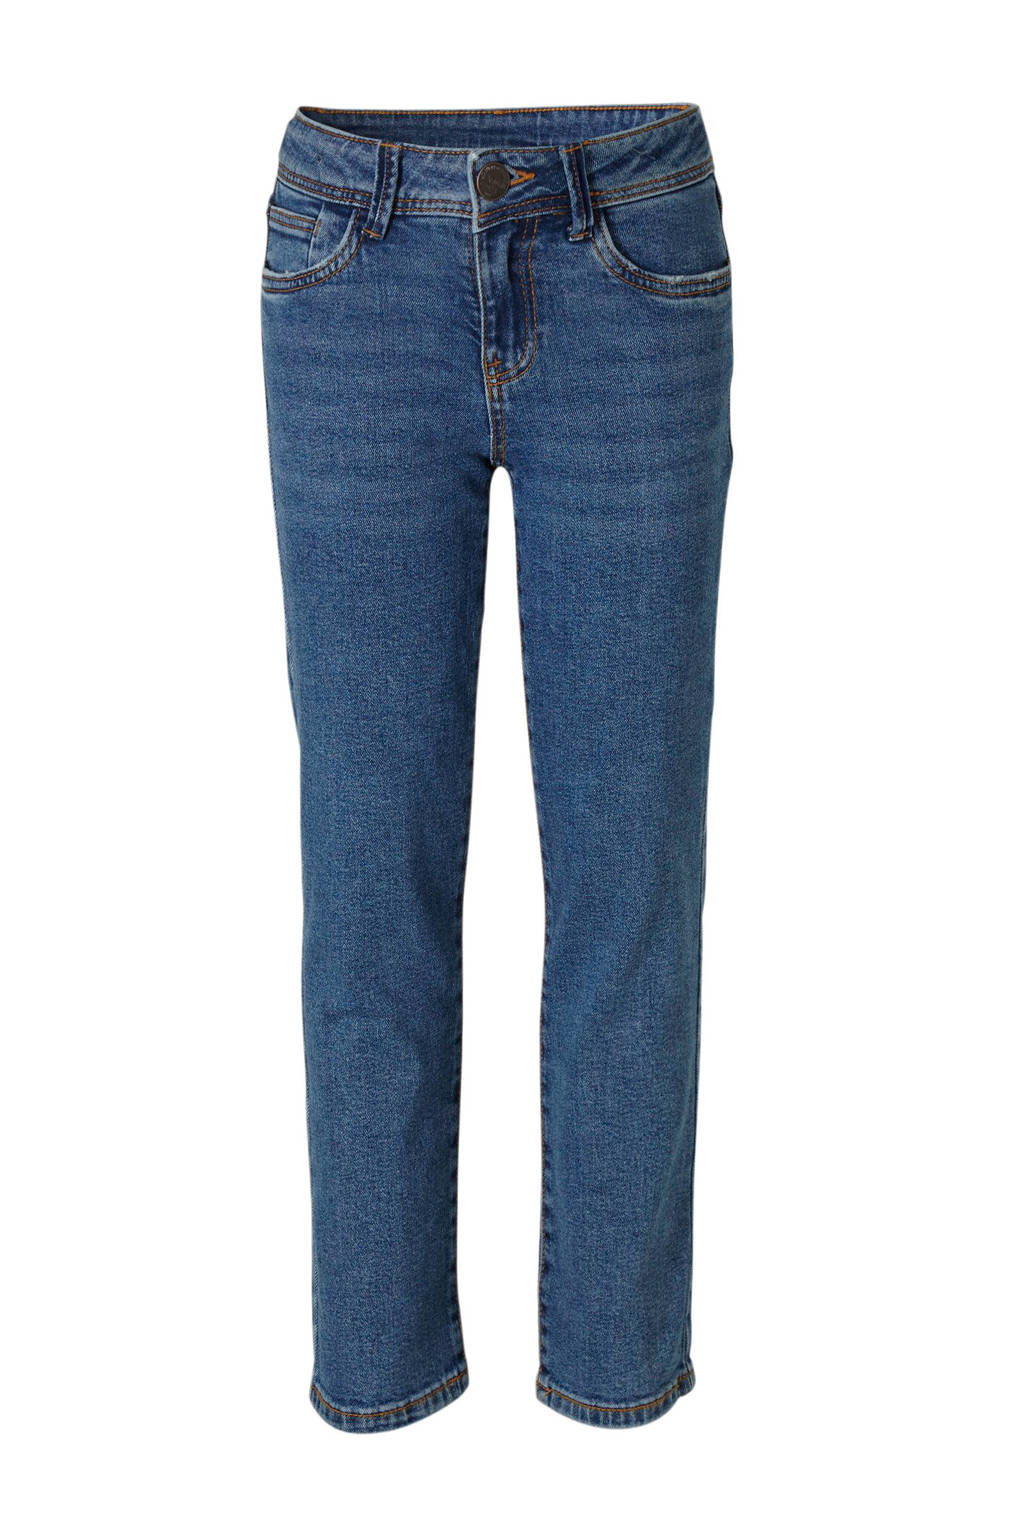 C&A Here & There straight fit jeans light denim, Light denim